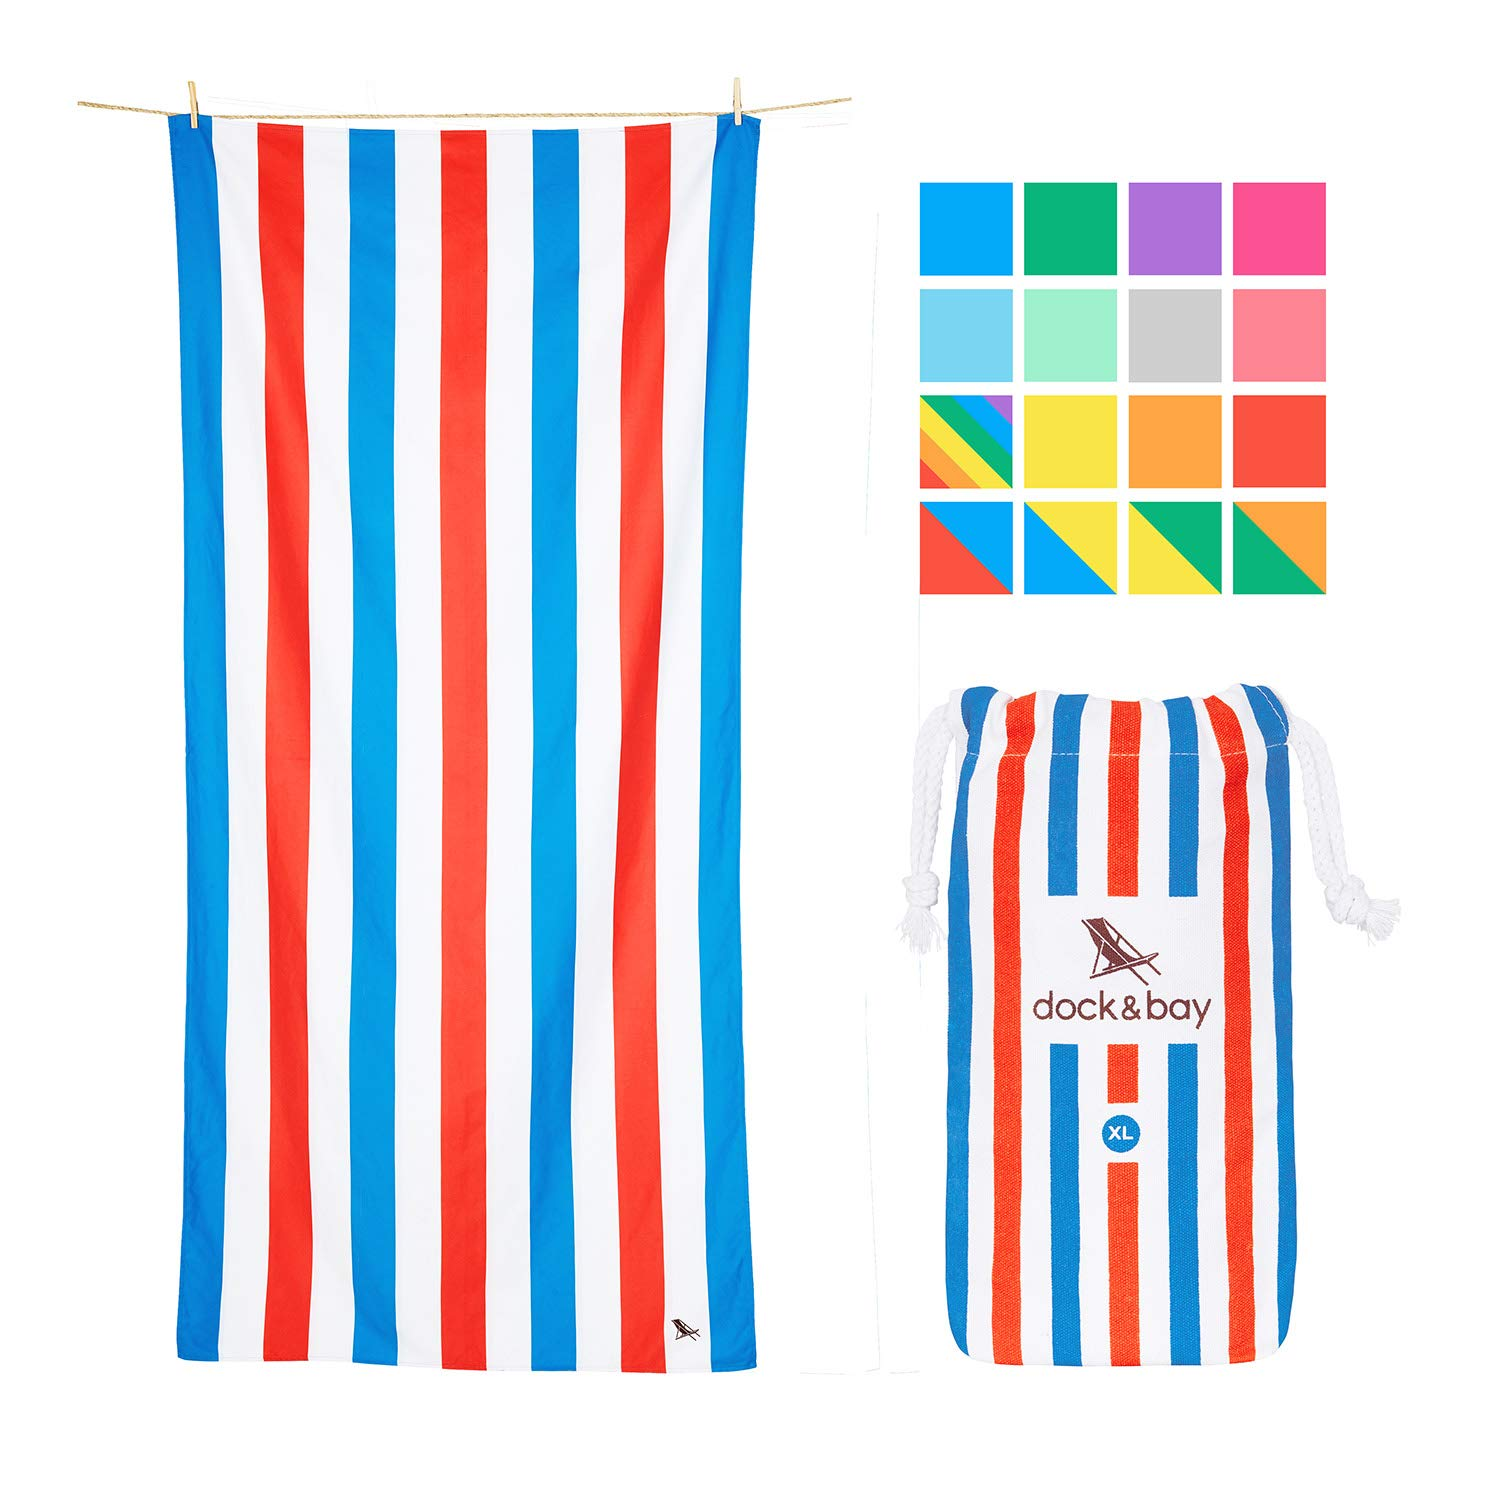 Dock & Bay Big Beach Towels Quick Dry - Pool Side Parties, Extra Large (200x90cm, 78x35) - USA Colors Striped, Compact Swim Towel, Pool Towel